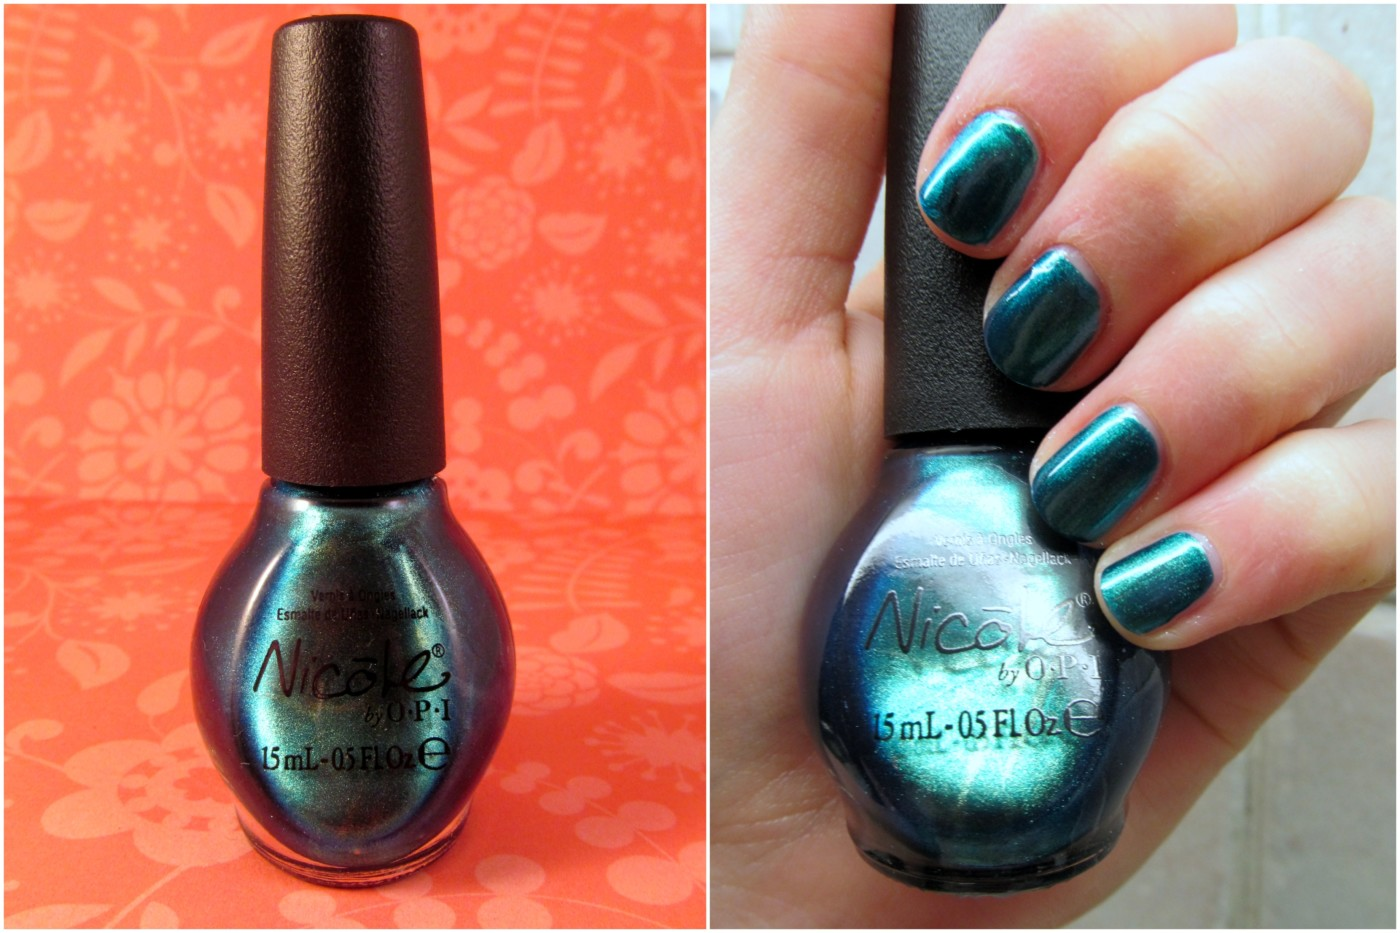 Nicole by OPI Modern Family Swatches - Liner and Glitter and Gloss ...